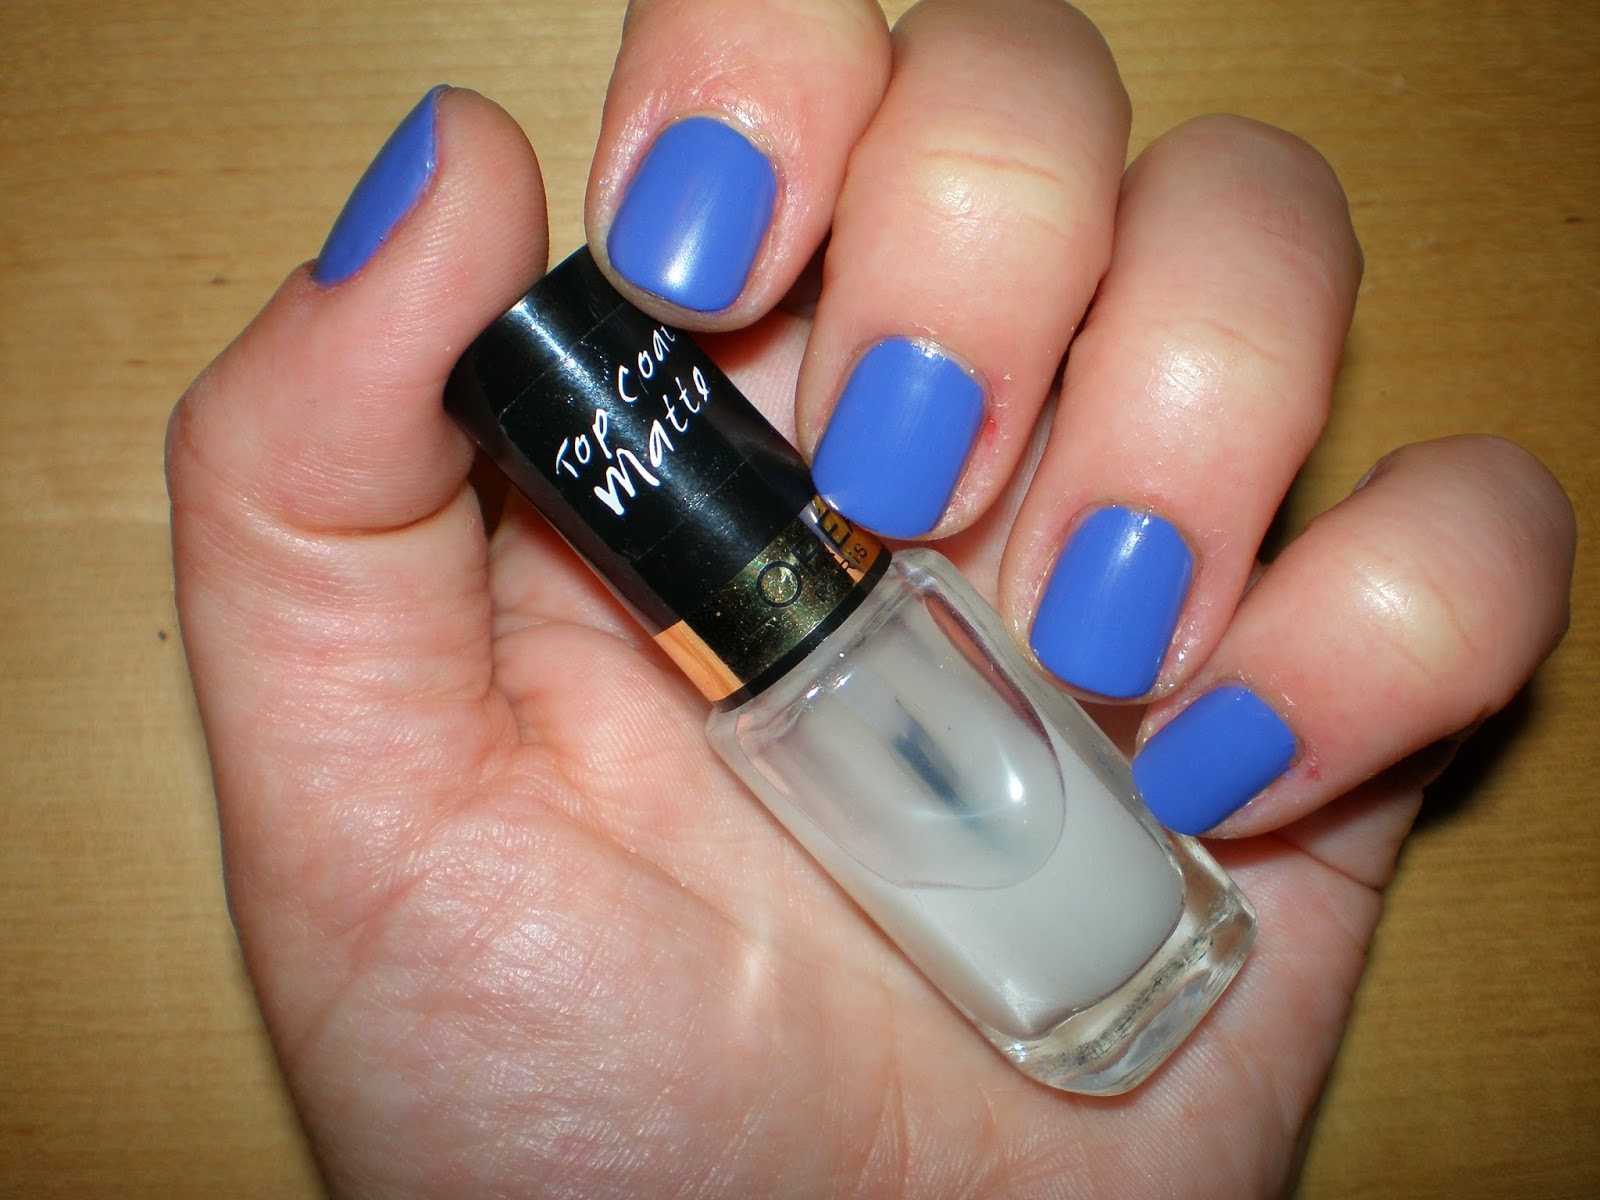 L'oreal top coat matte